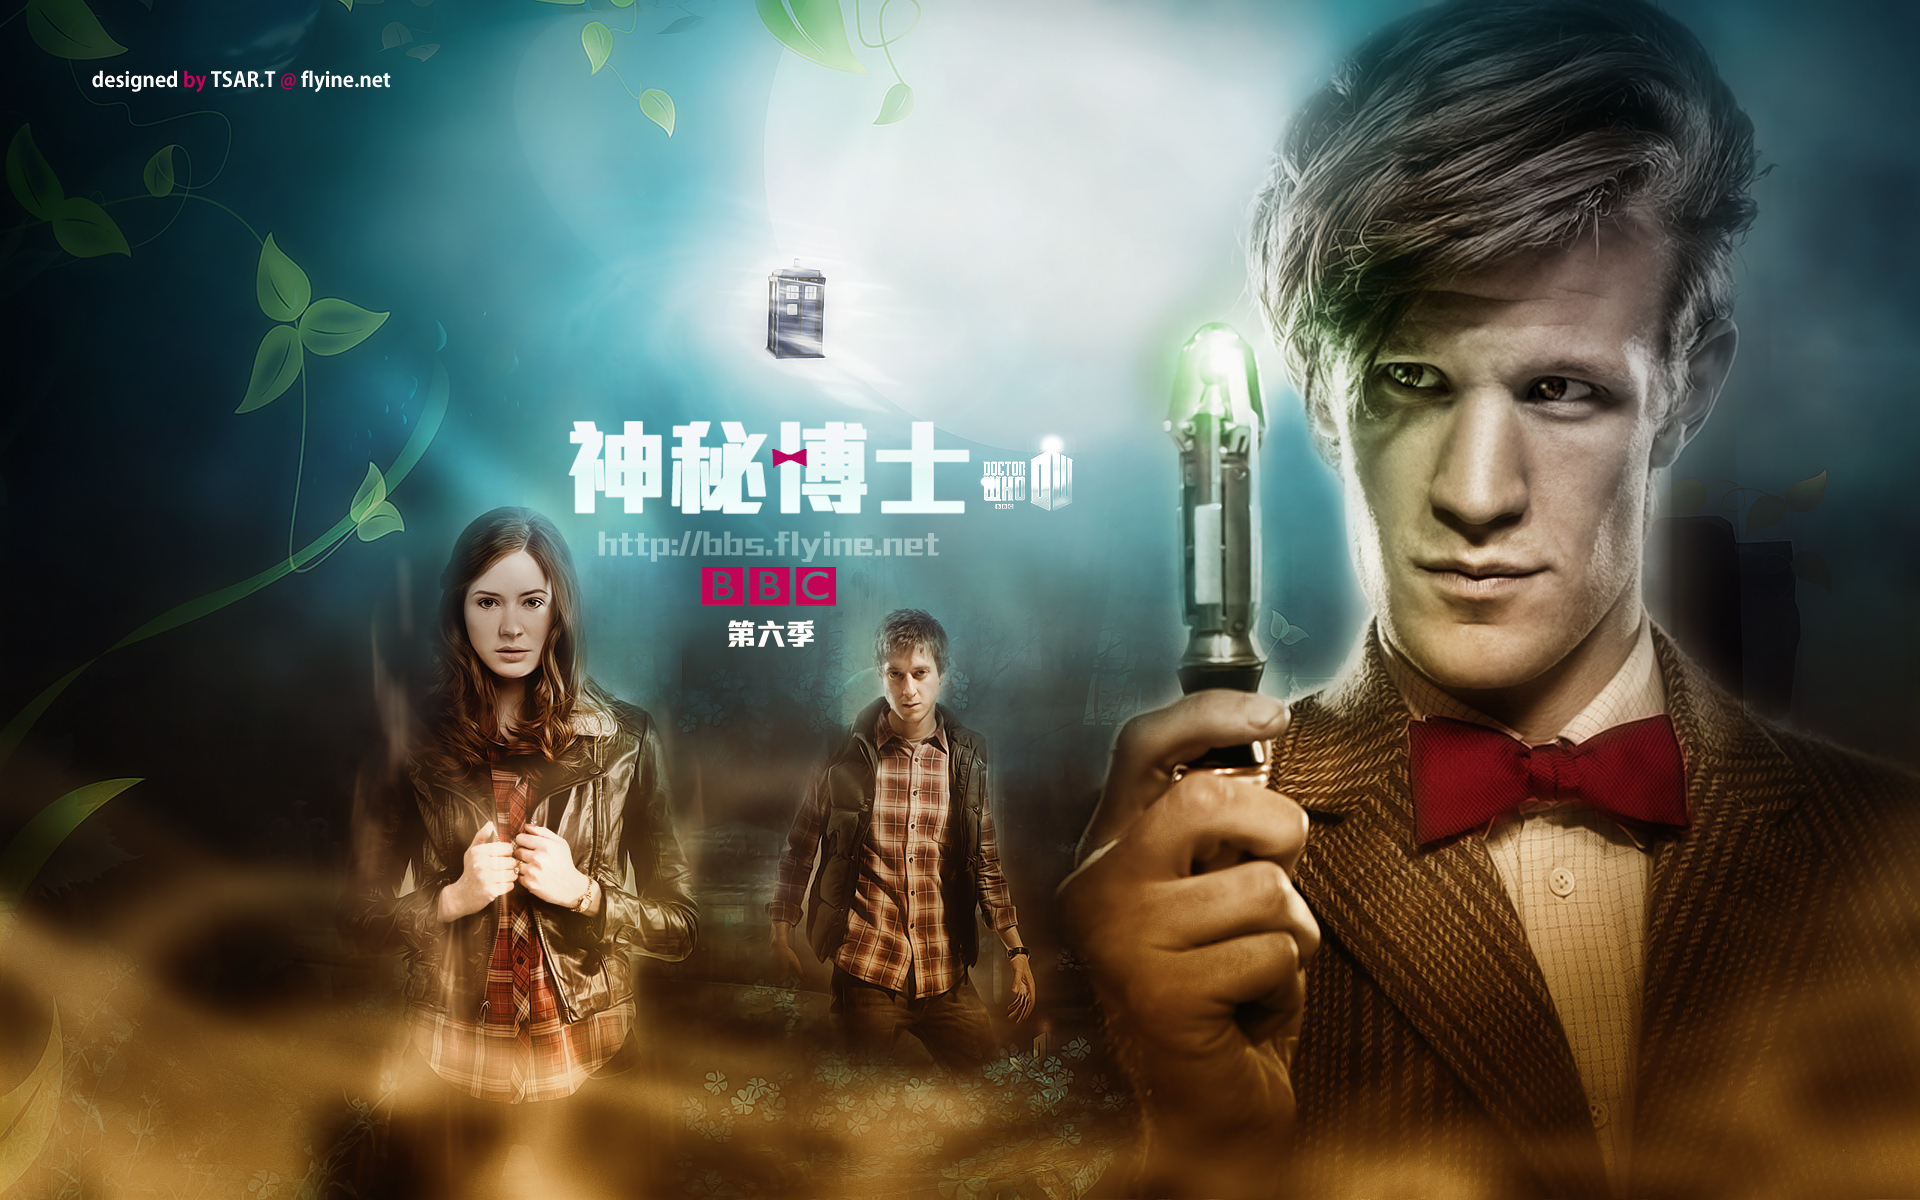 Doctor Who doctor who wallpaper for the 6th season~new adventure